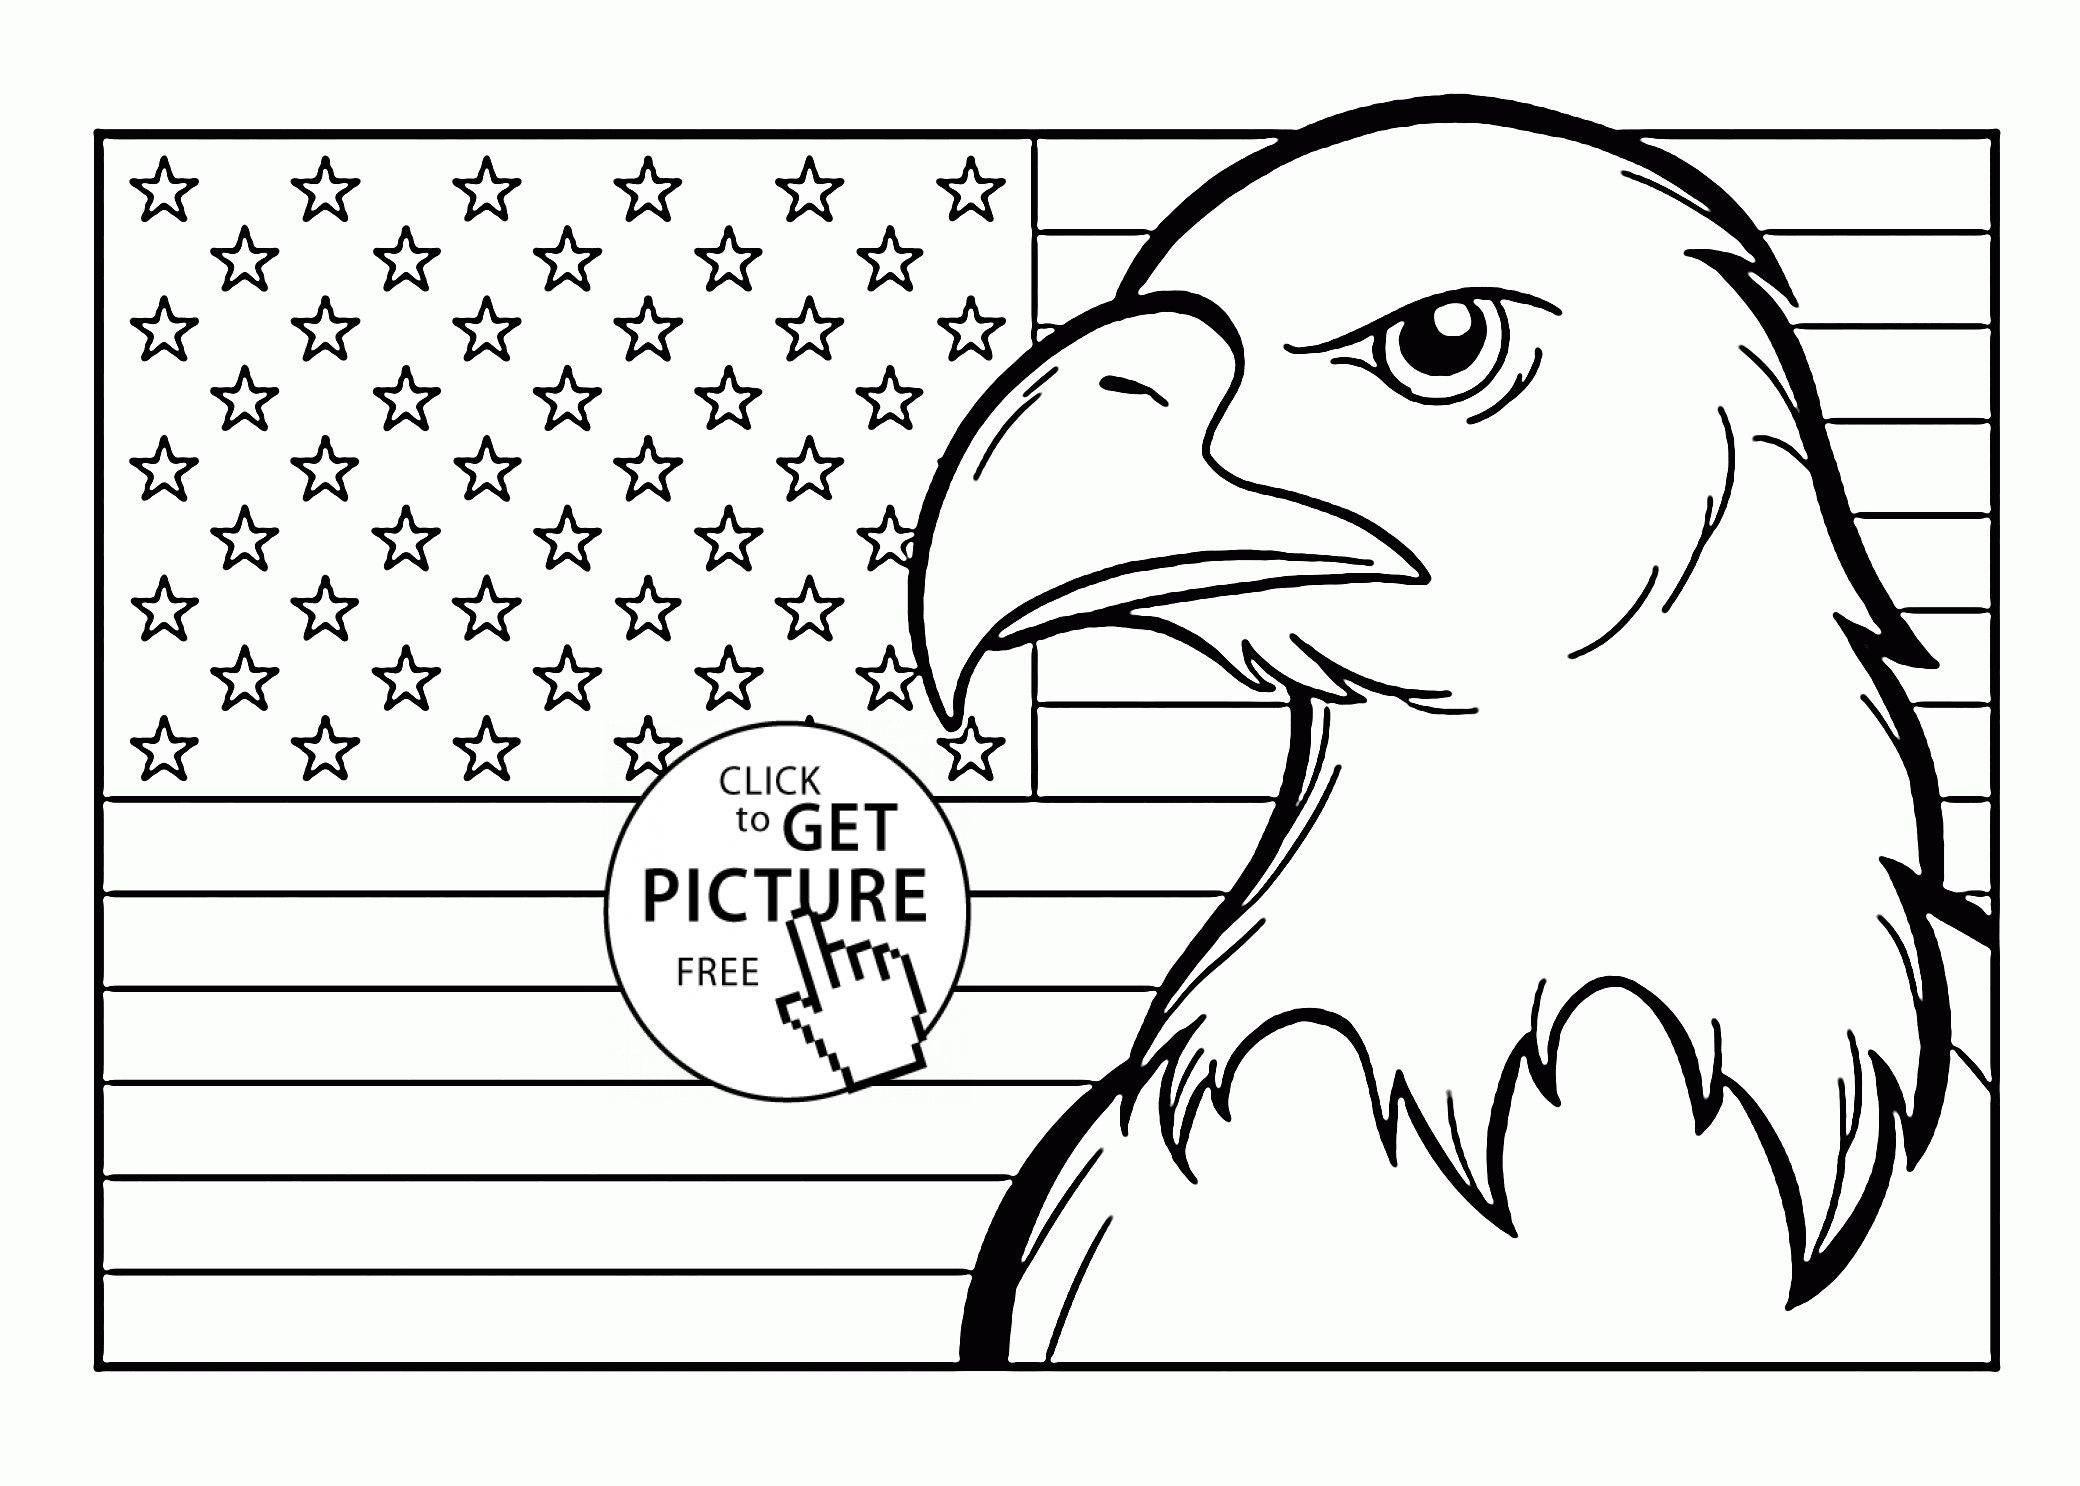 27 Fourth Of July Coloring Pages Images | FREE COLORING PAGES - Part 2